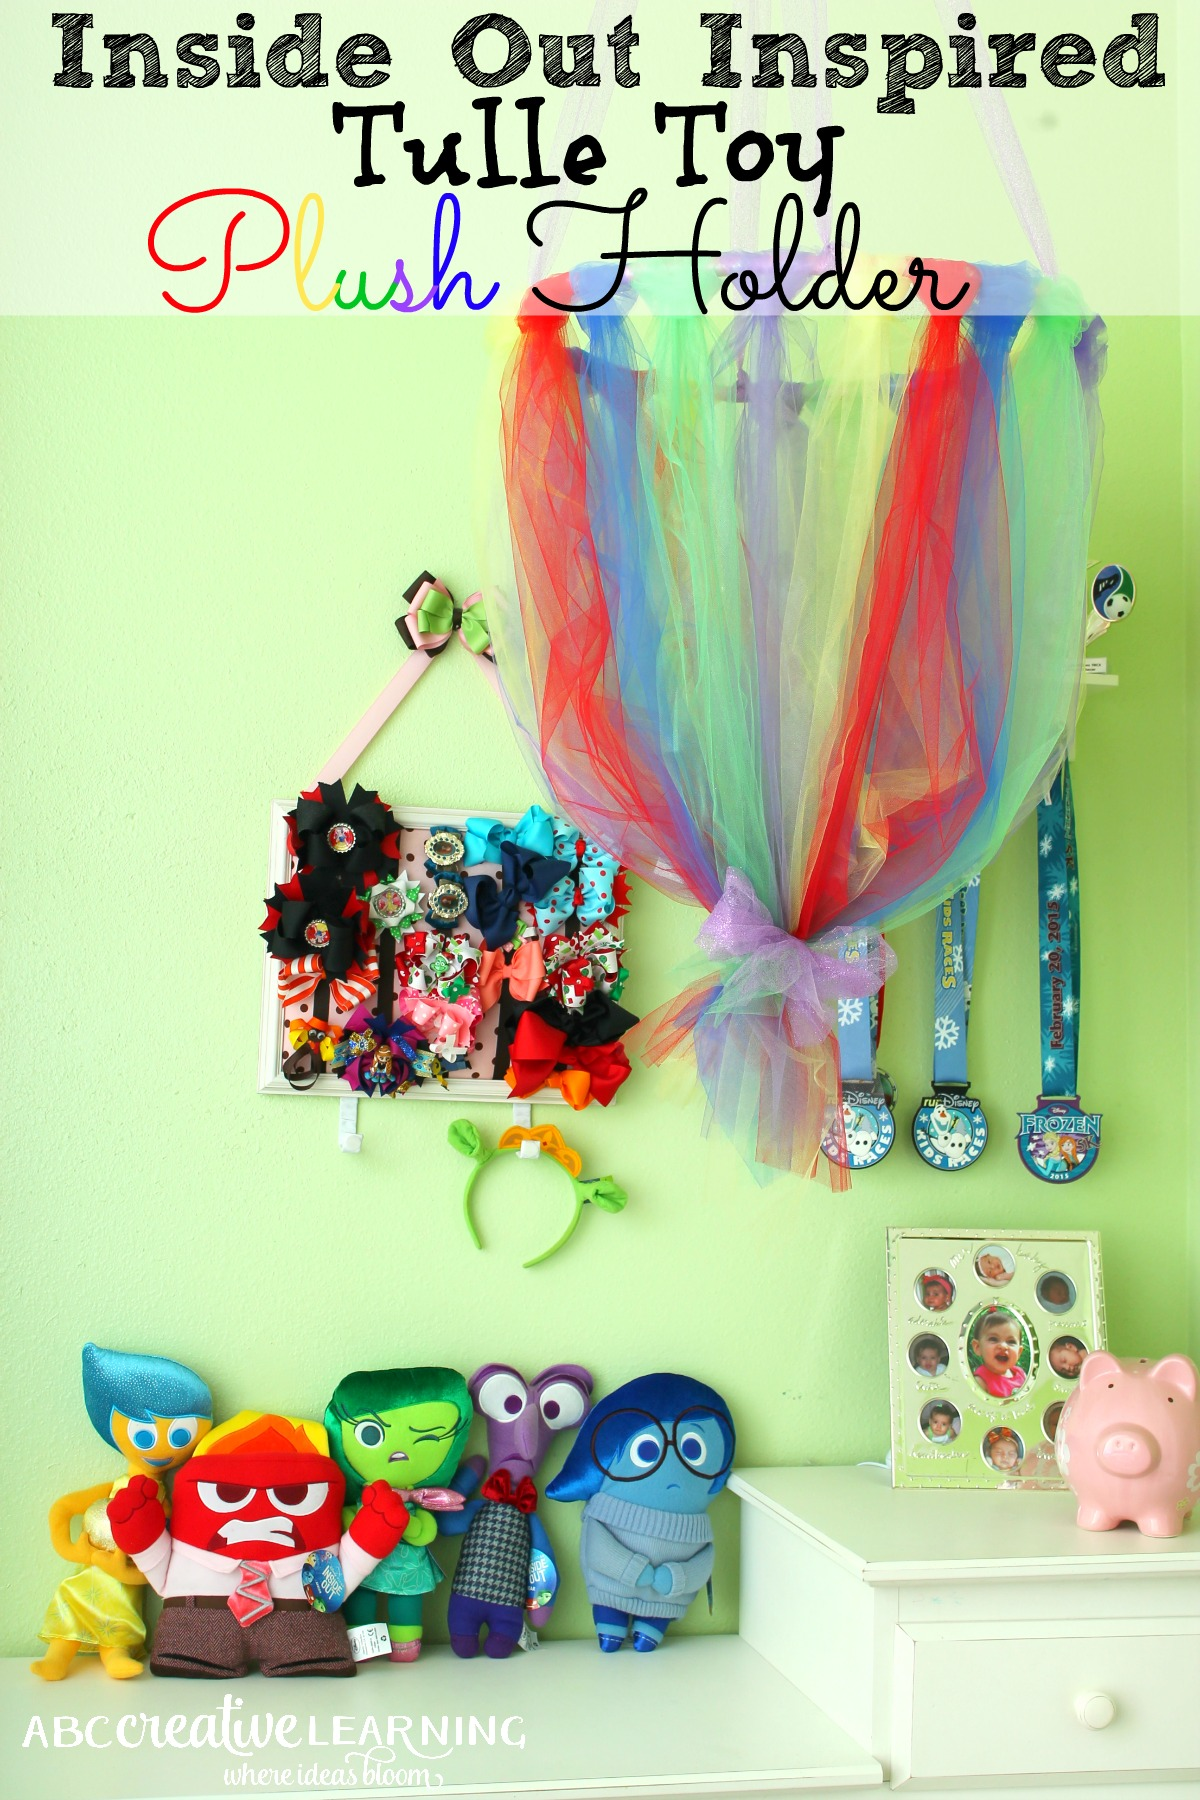 Inside Out Inspired Tulle Toy Plush Holder Tutorial